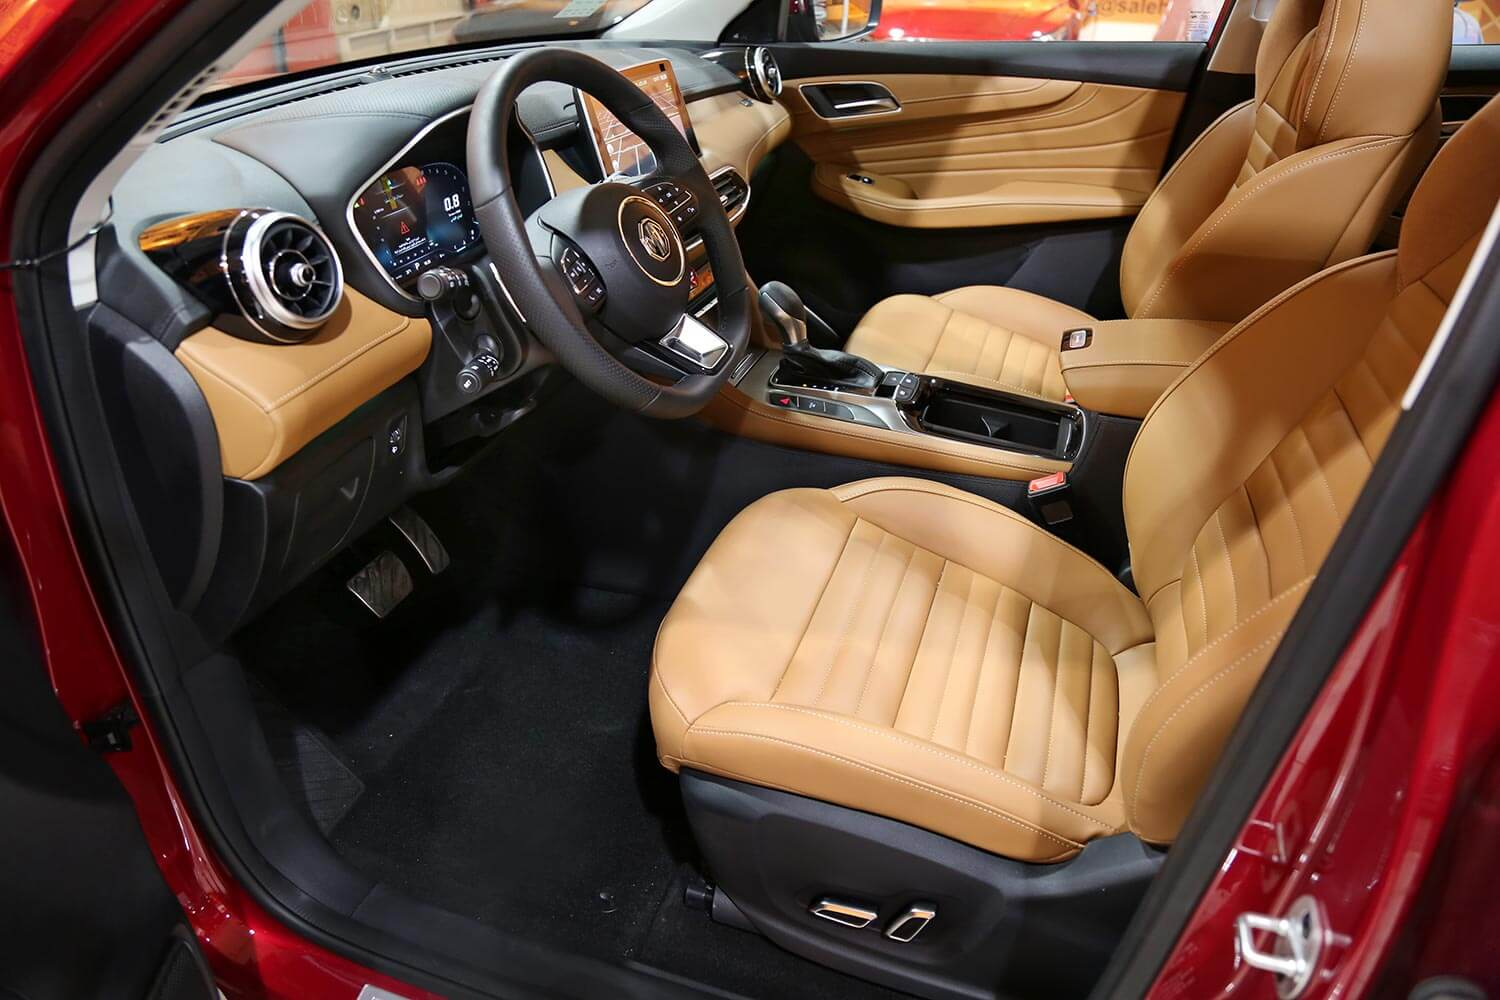 Interior Image for  MG HS 30T 2020